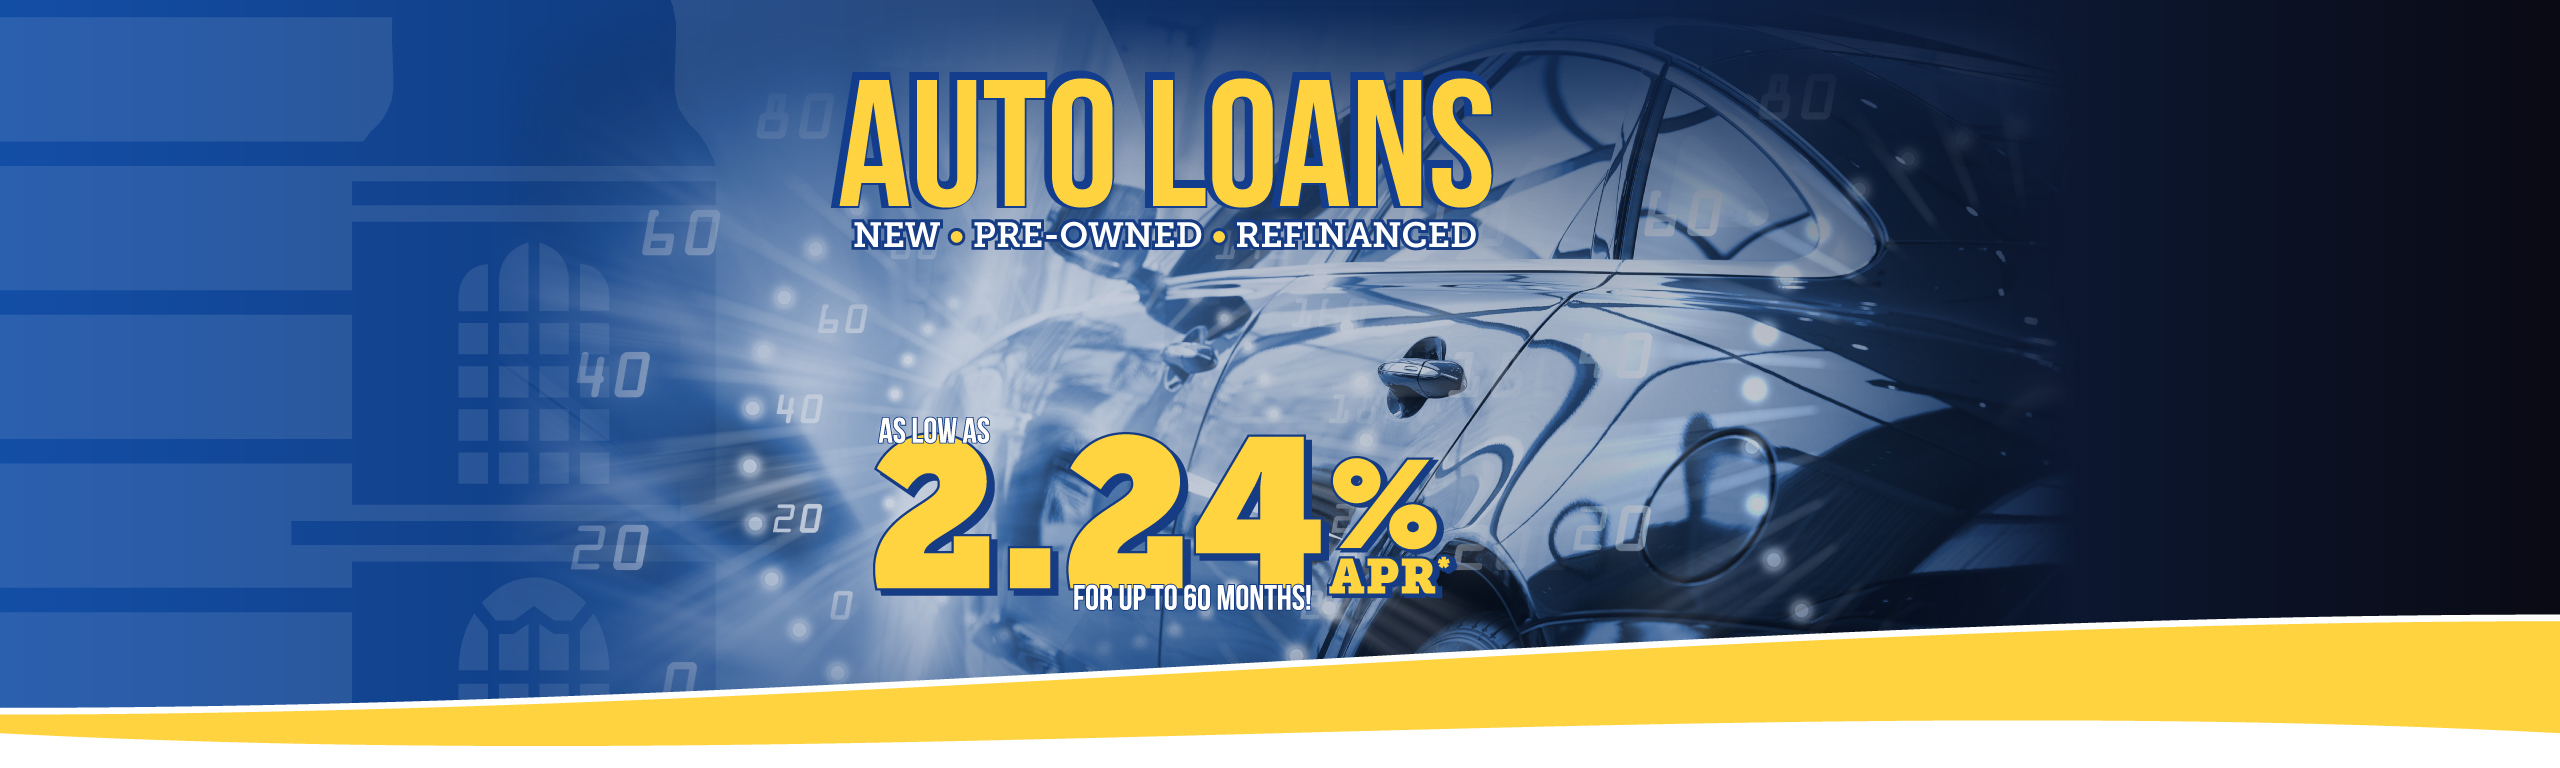 Auto Loans New Used Refinance Rates as low as 2.25% APR*